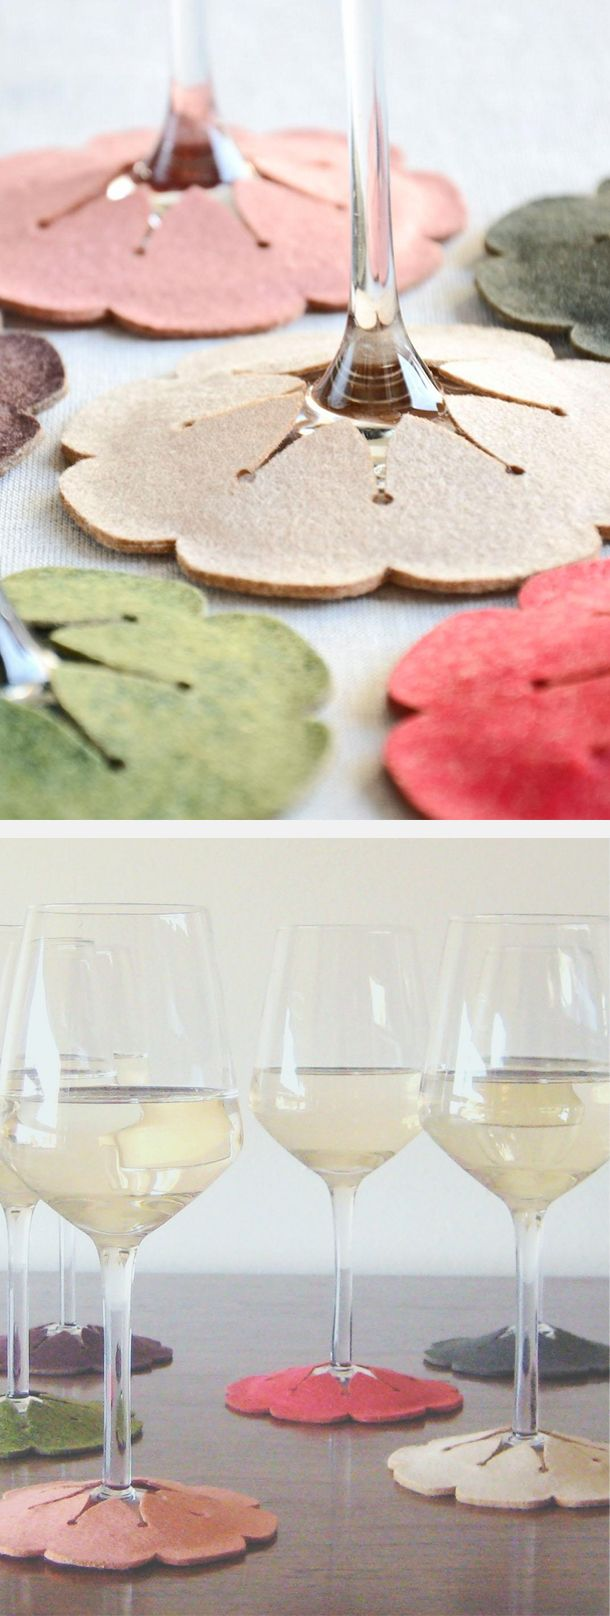 Stay-on felt wine coasters // such a brilliant yet simple idea #product_design I reckon I could make these